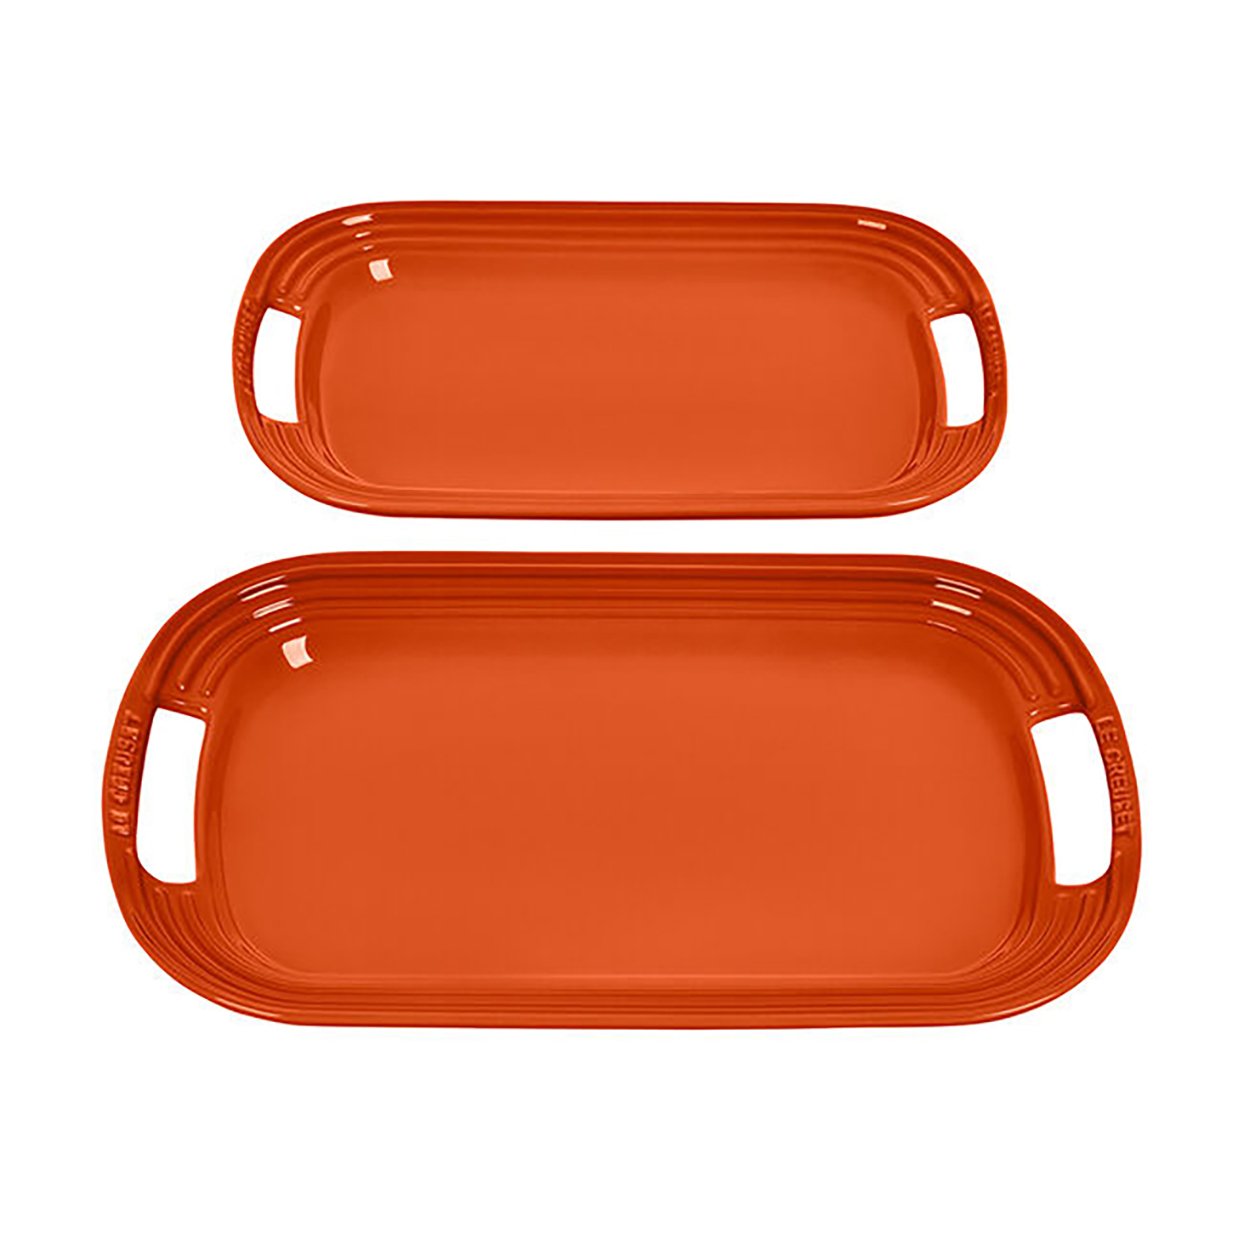 Le Creuset Serving Platters